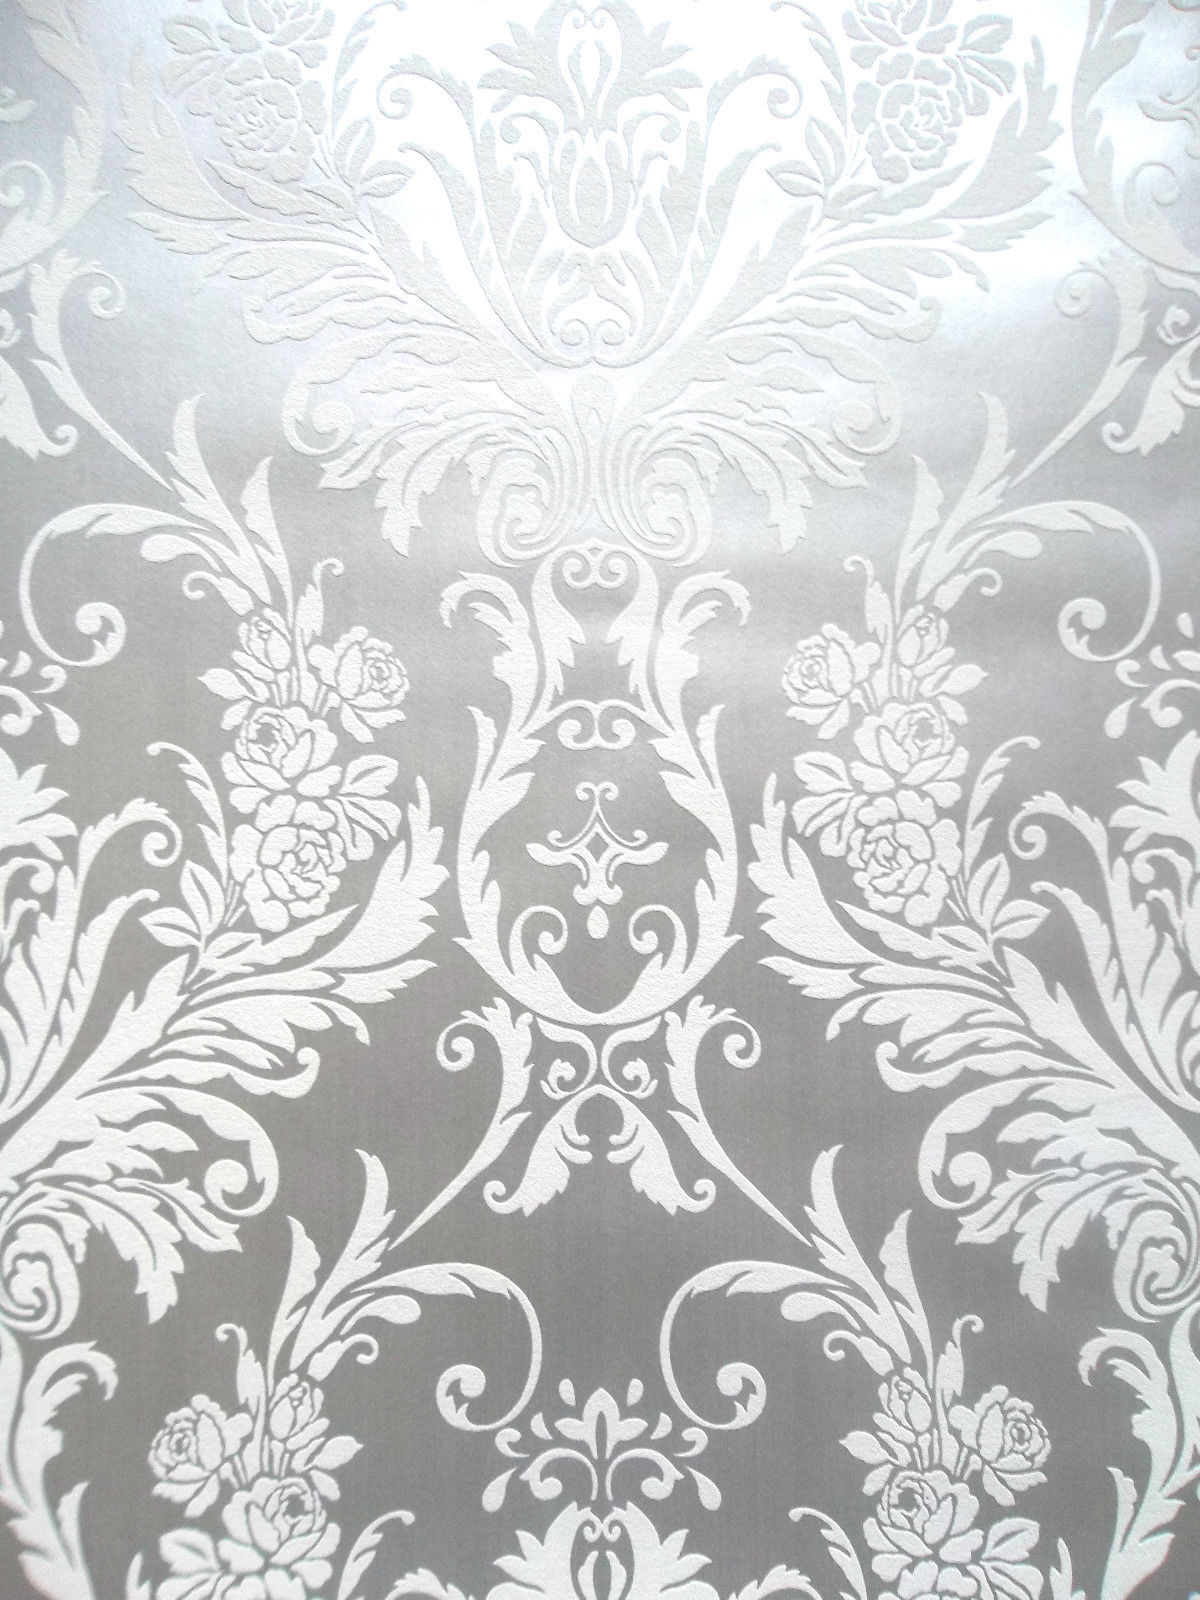 medina white and silver metallic damask feature wallpaper. Black Bedroom Furniture Sets. Home Design Ideas